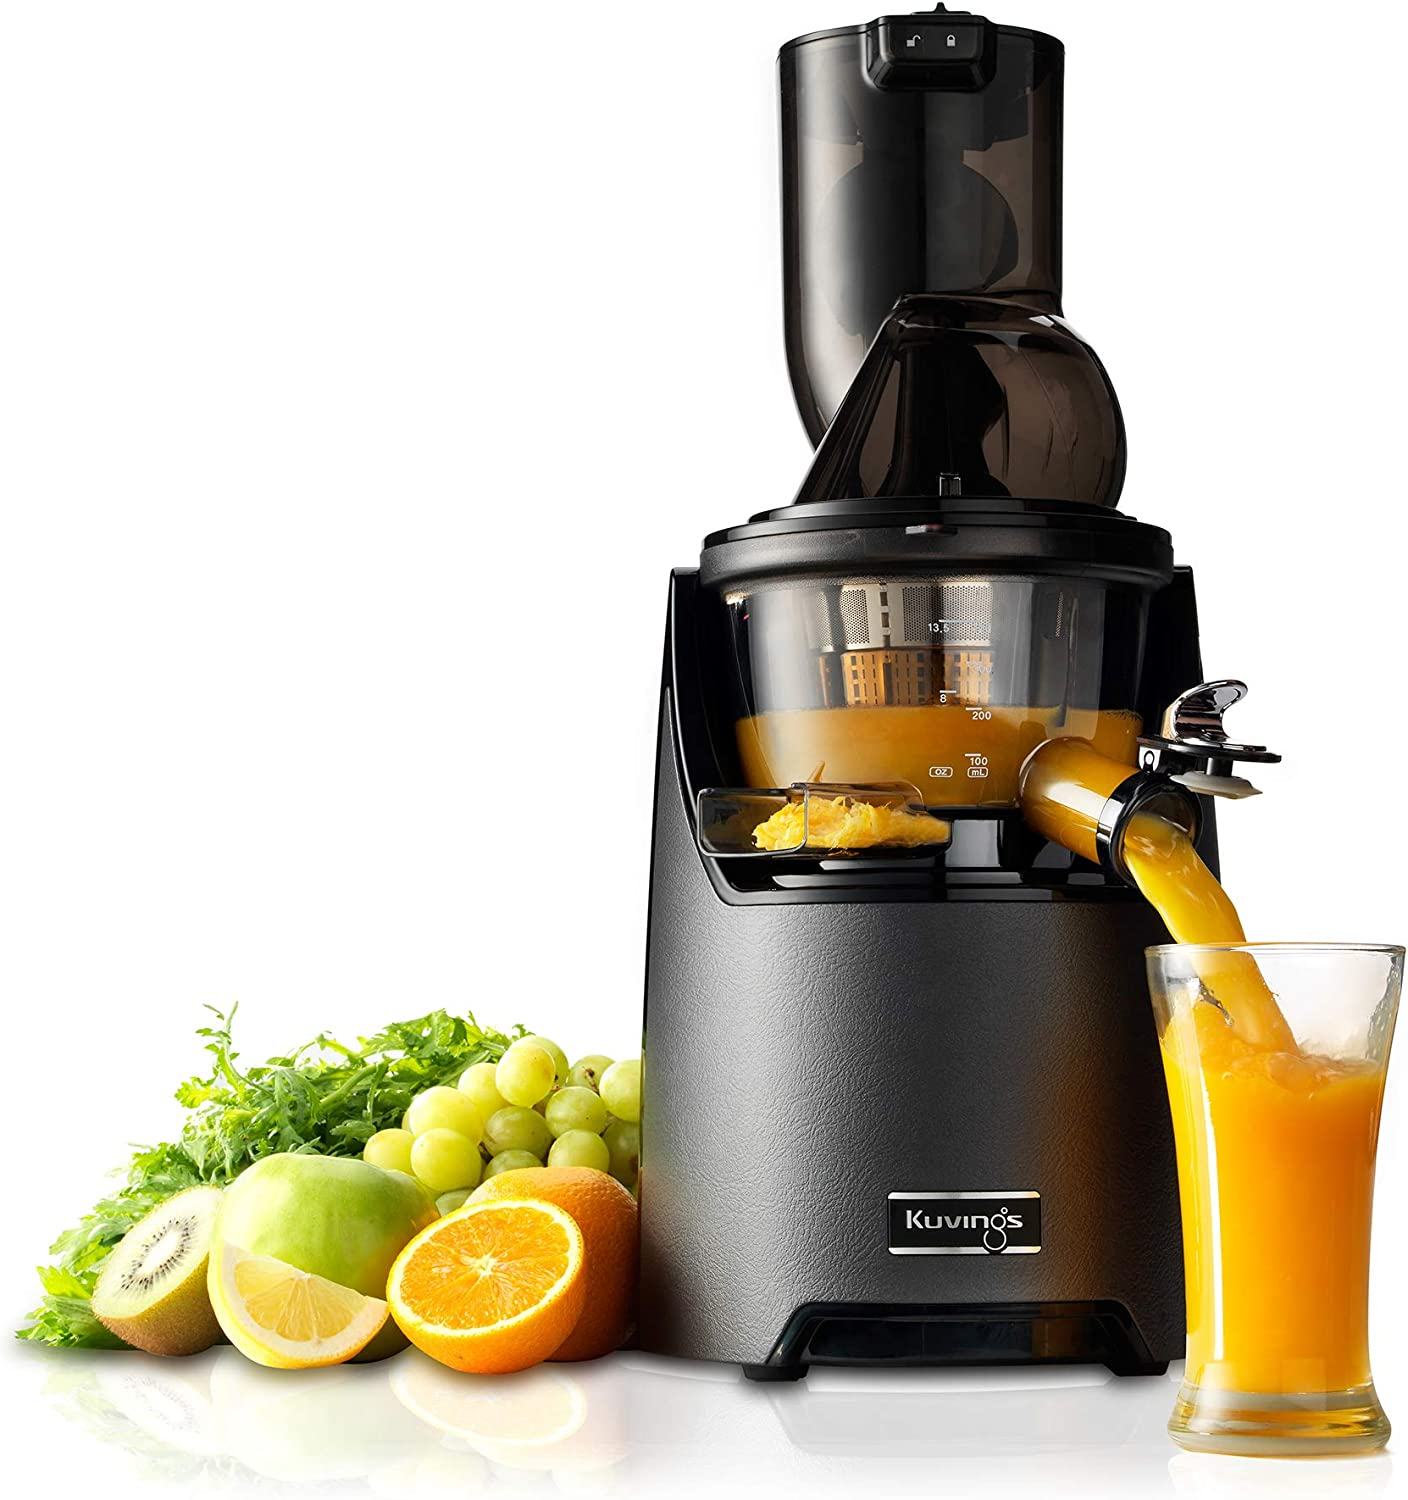 71cop8hF2jL. AC SL1500 The Best Juicers for Celery 2021 - Review & Buyer's Guide